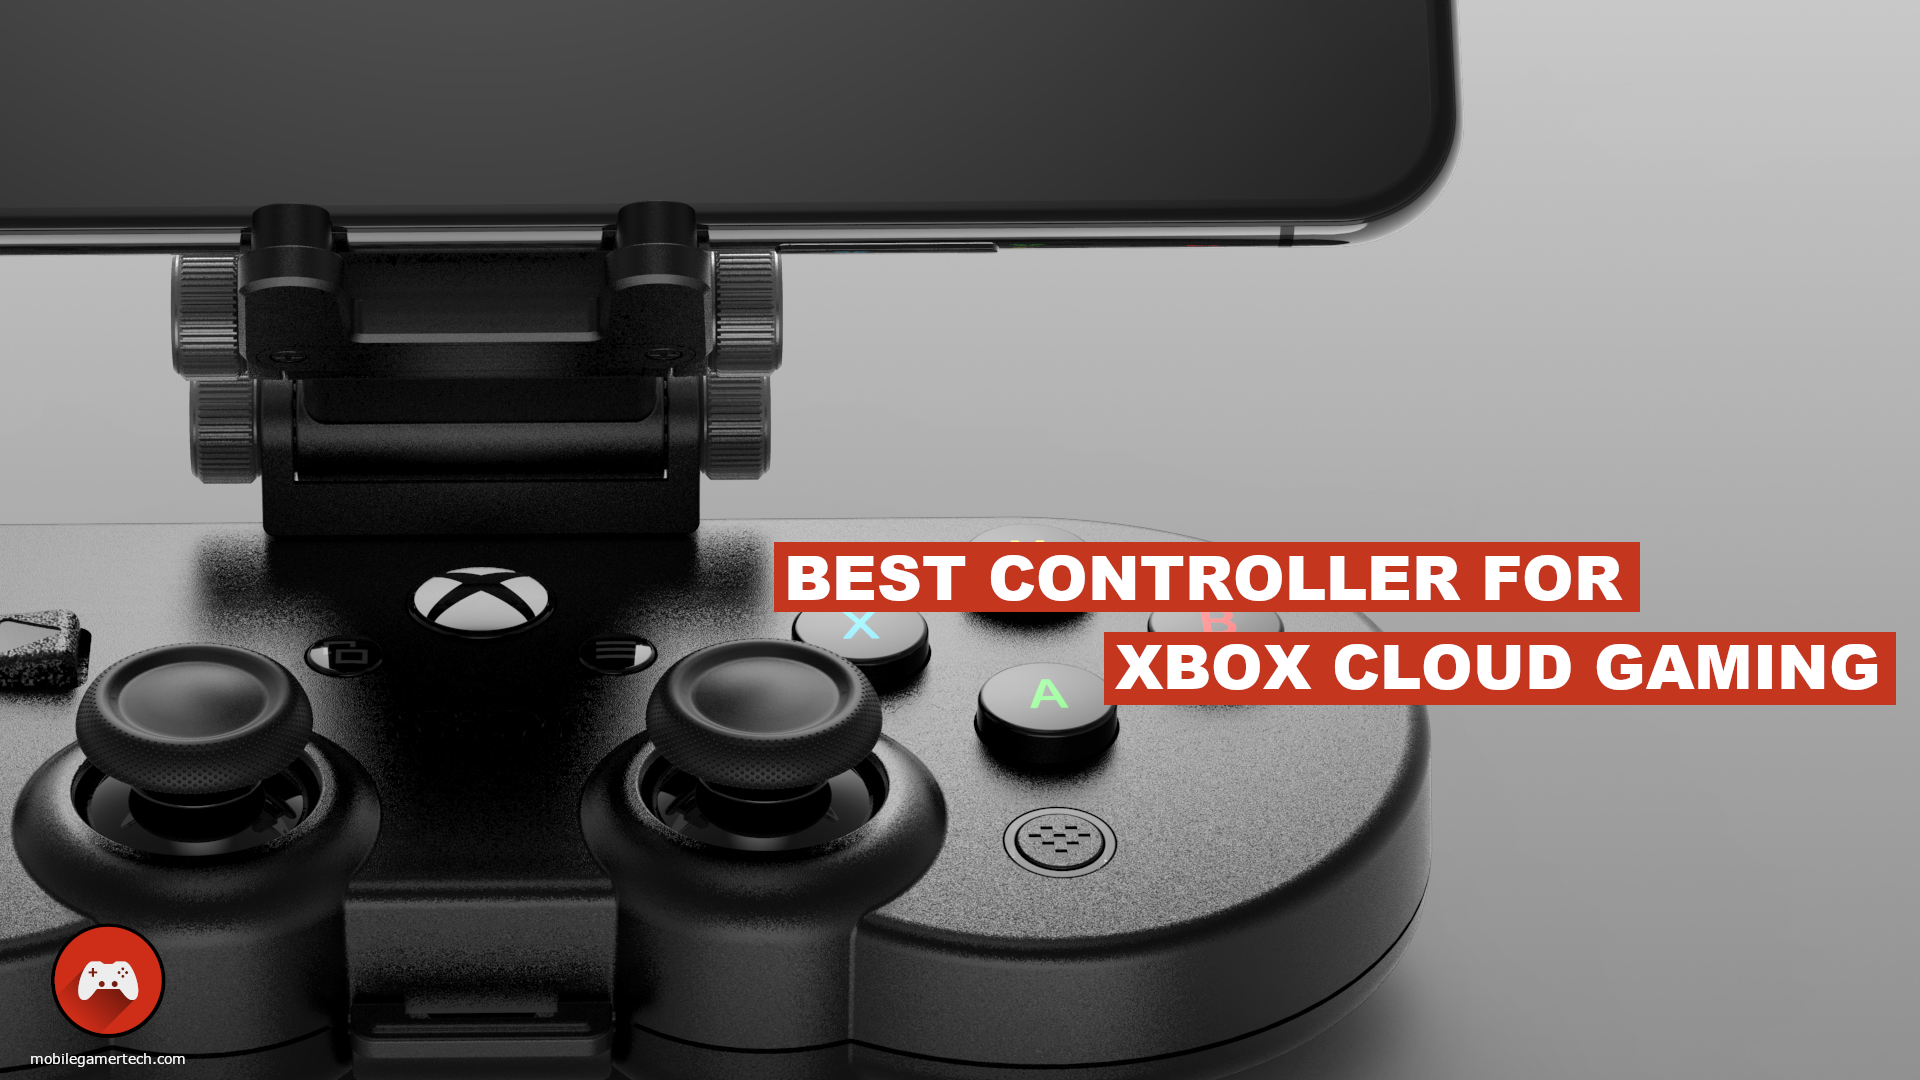 Bwst Controller for Xbox Cloud Gaming